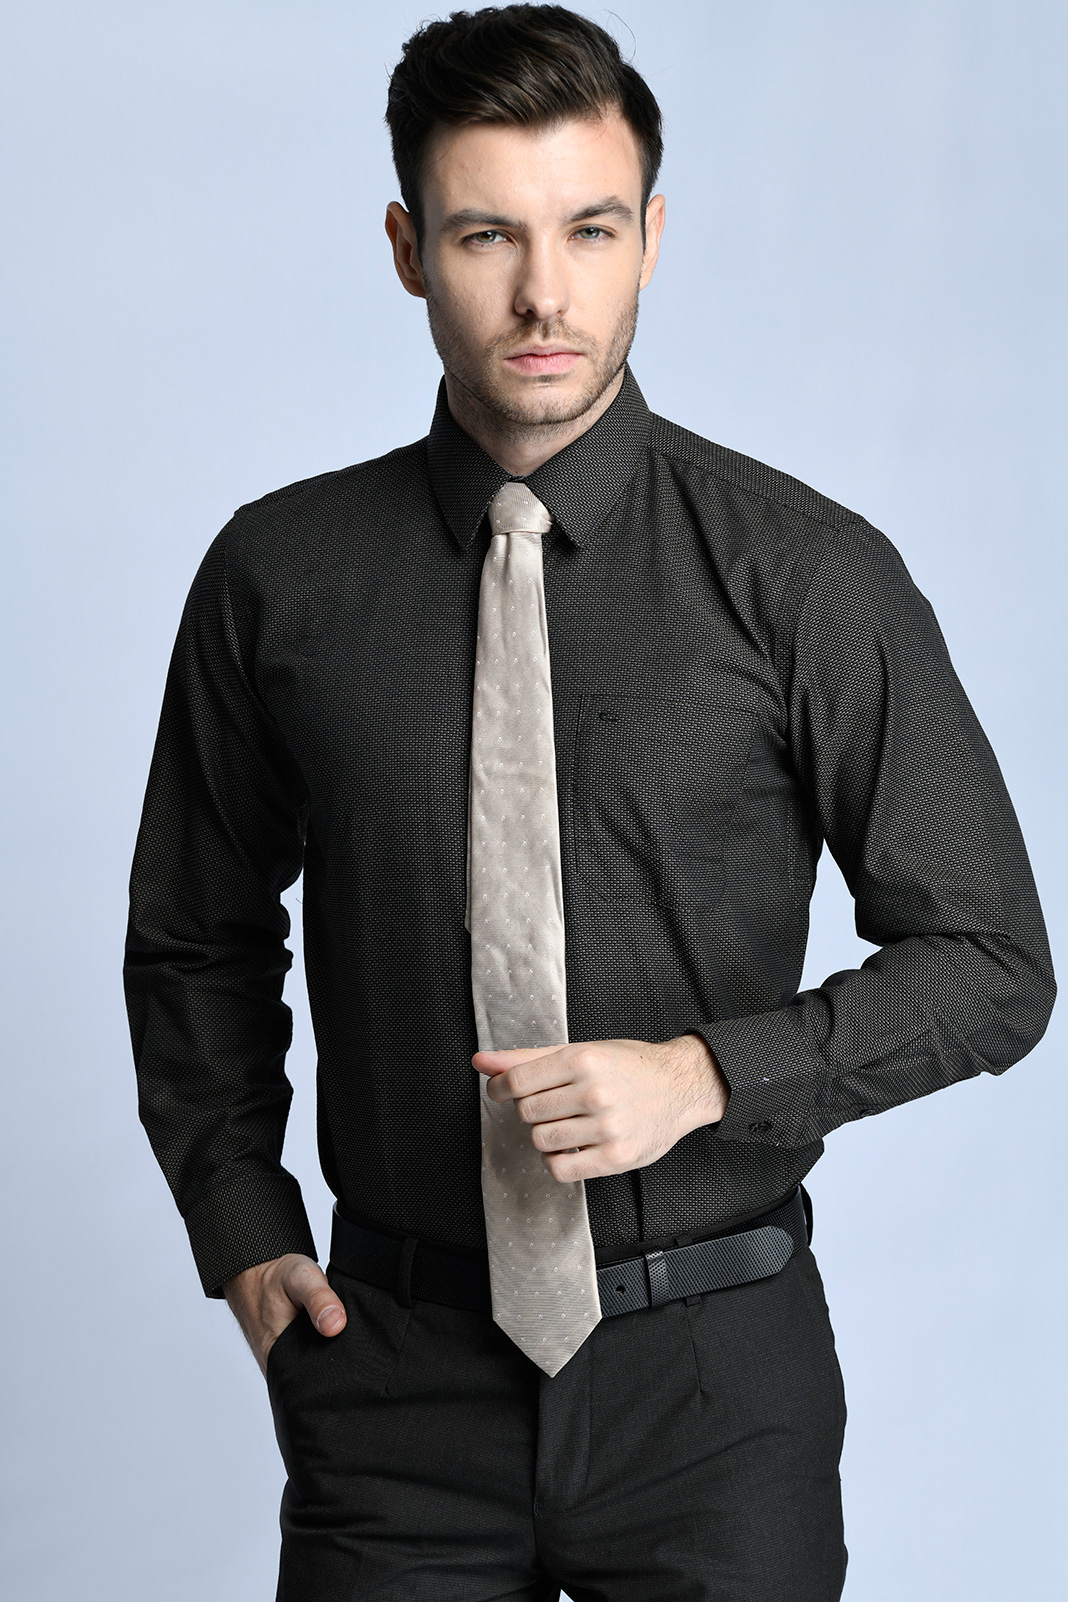 KEMEJA TANGAN PANJANG FORMAL SLIM FIT 10 (HITAM)